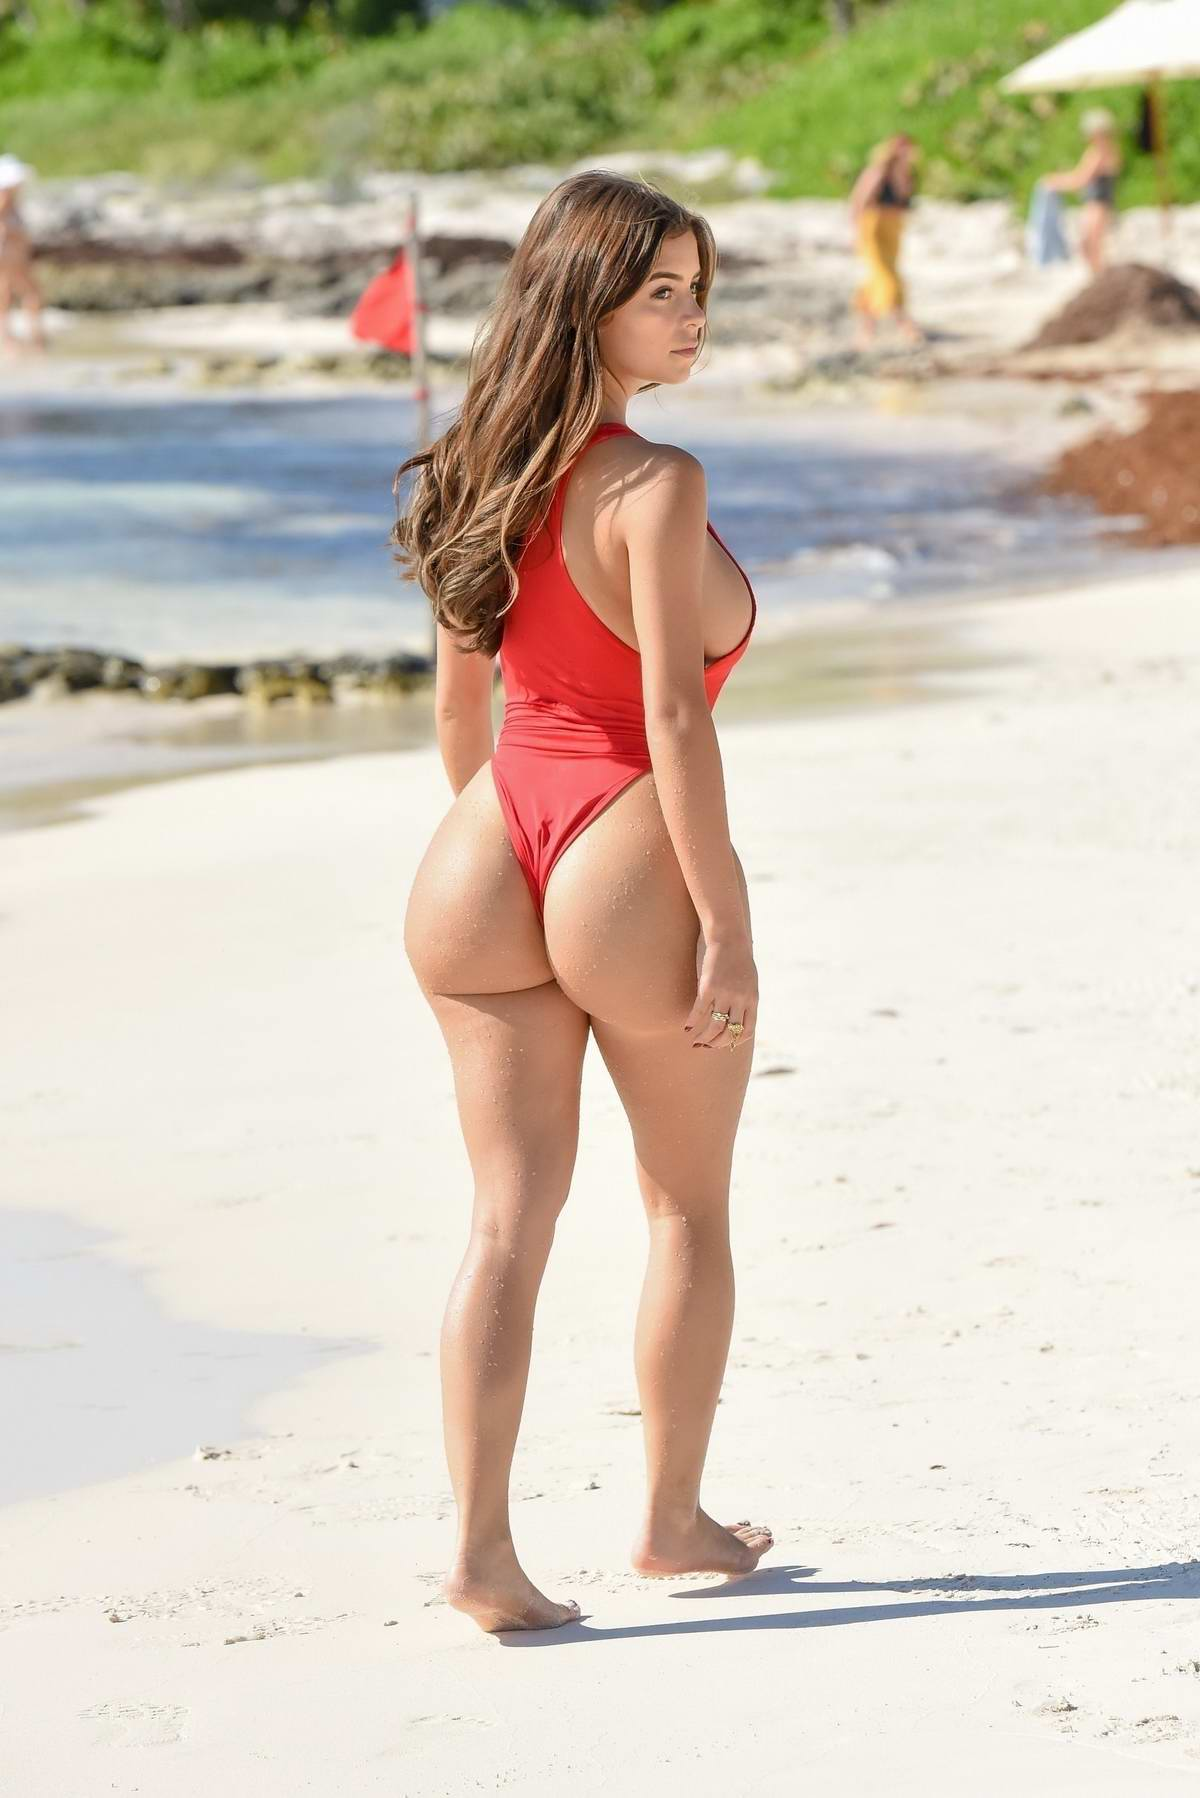 Les chixx du Prince (combat #3) Demi-rose-poses-in-a-red-bikini-during-a-beach-photoshoot-in-tulum-mexico-240119_2